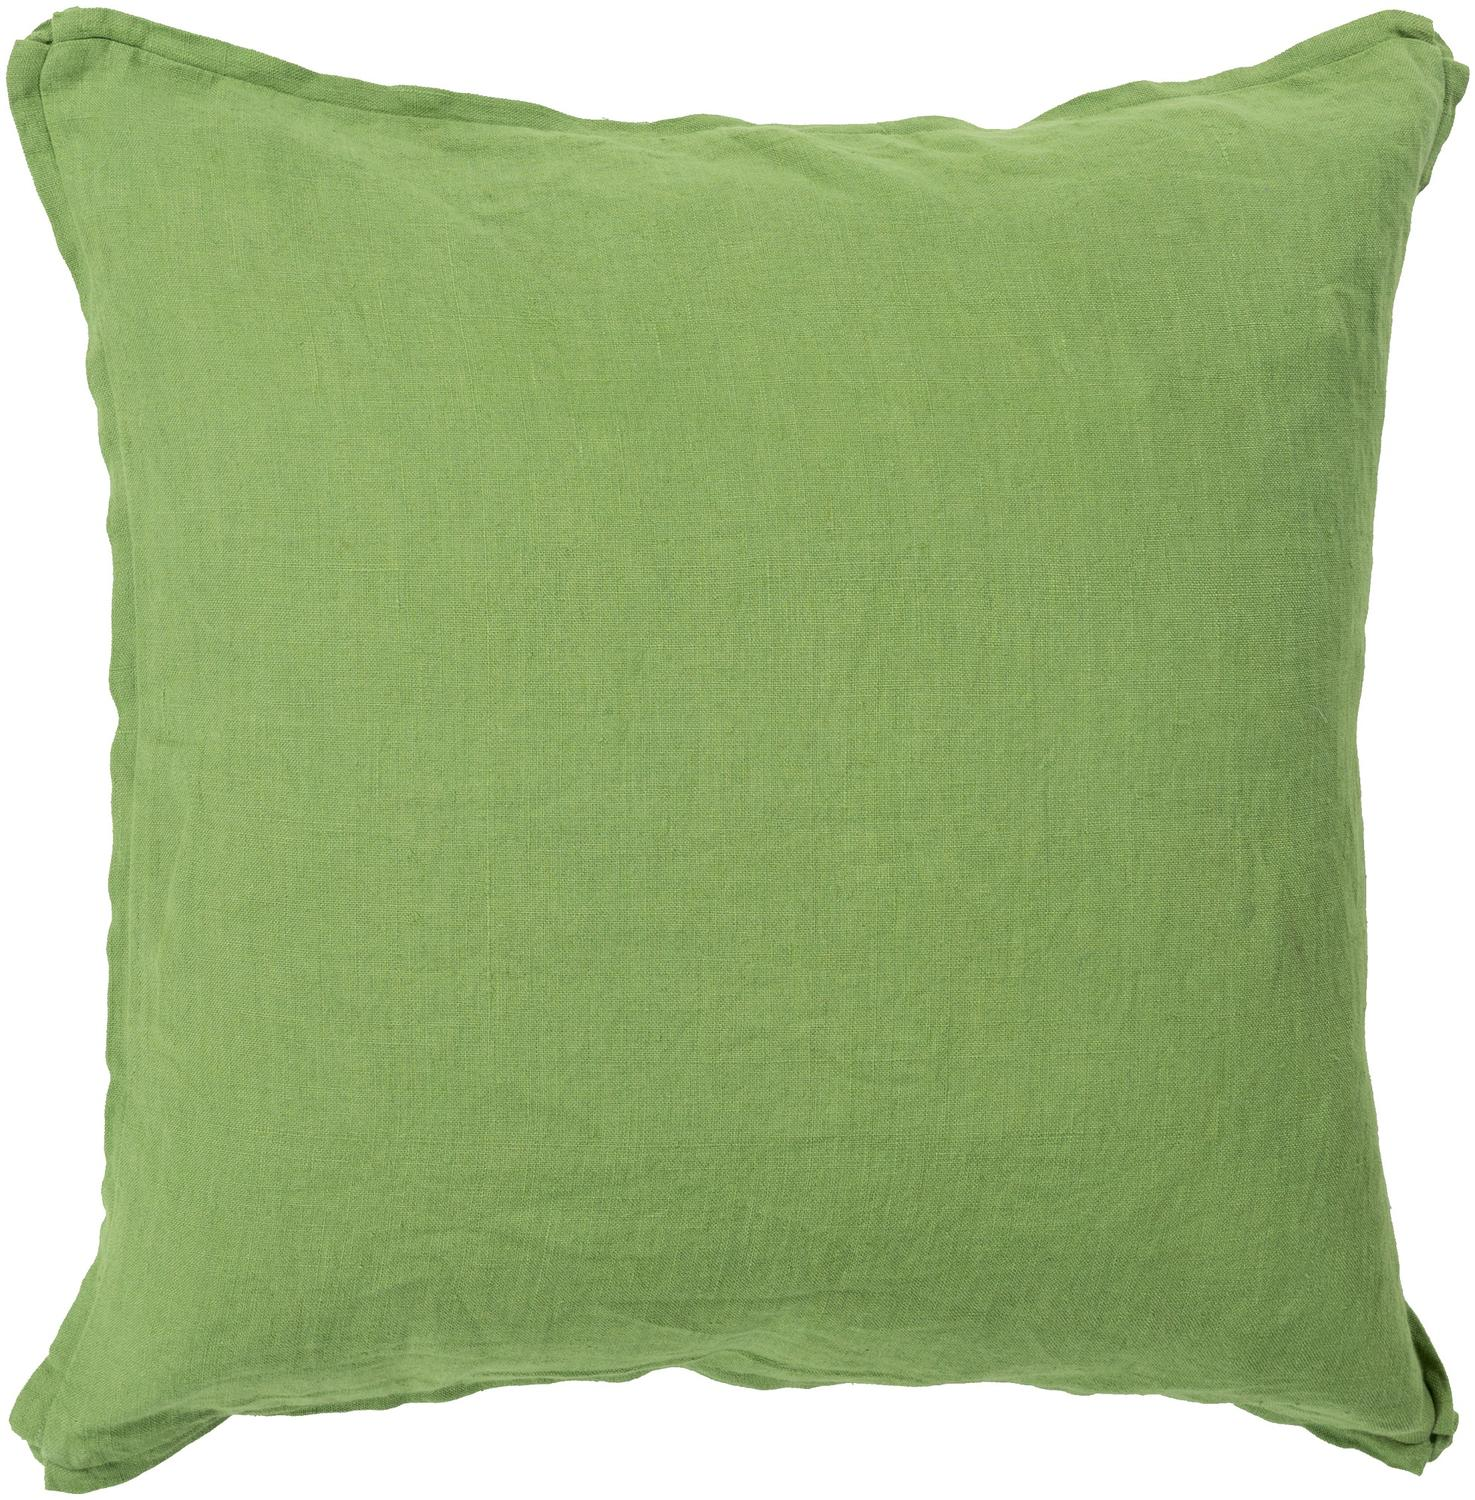 "20"" Light Green Solid Decorative Square Throw Pillow with Coordinating Trim"